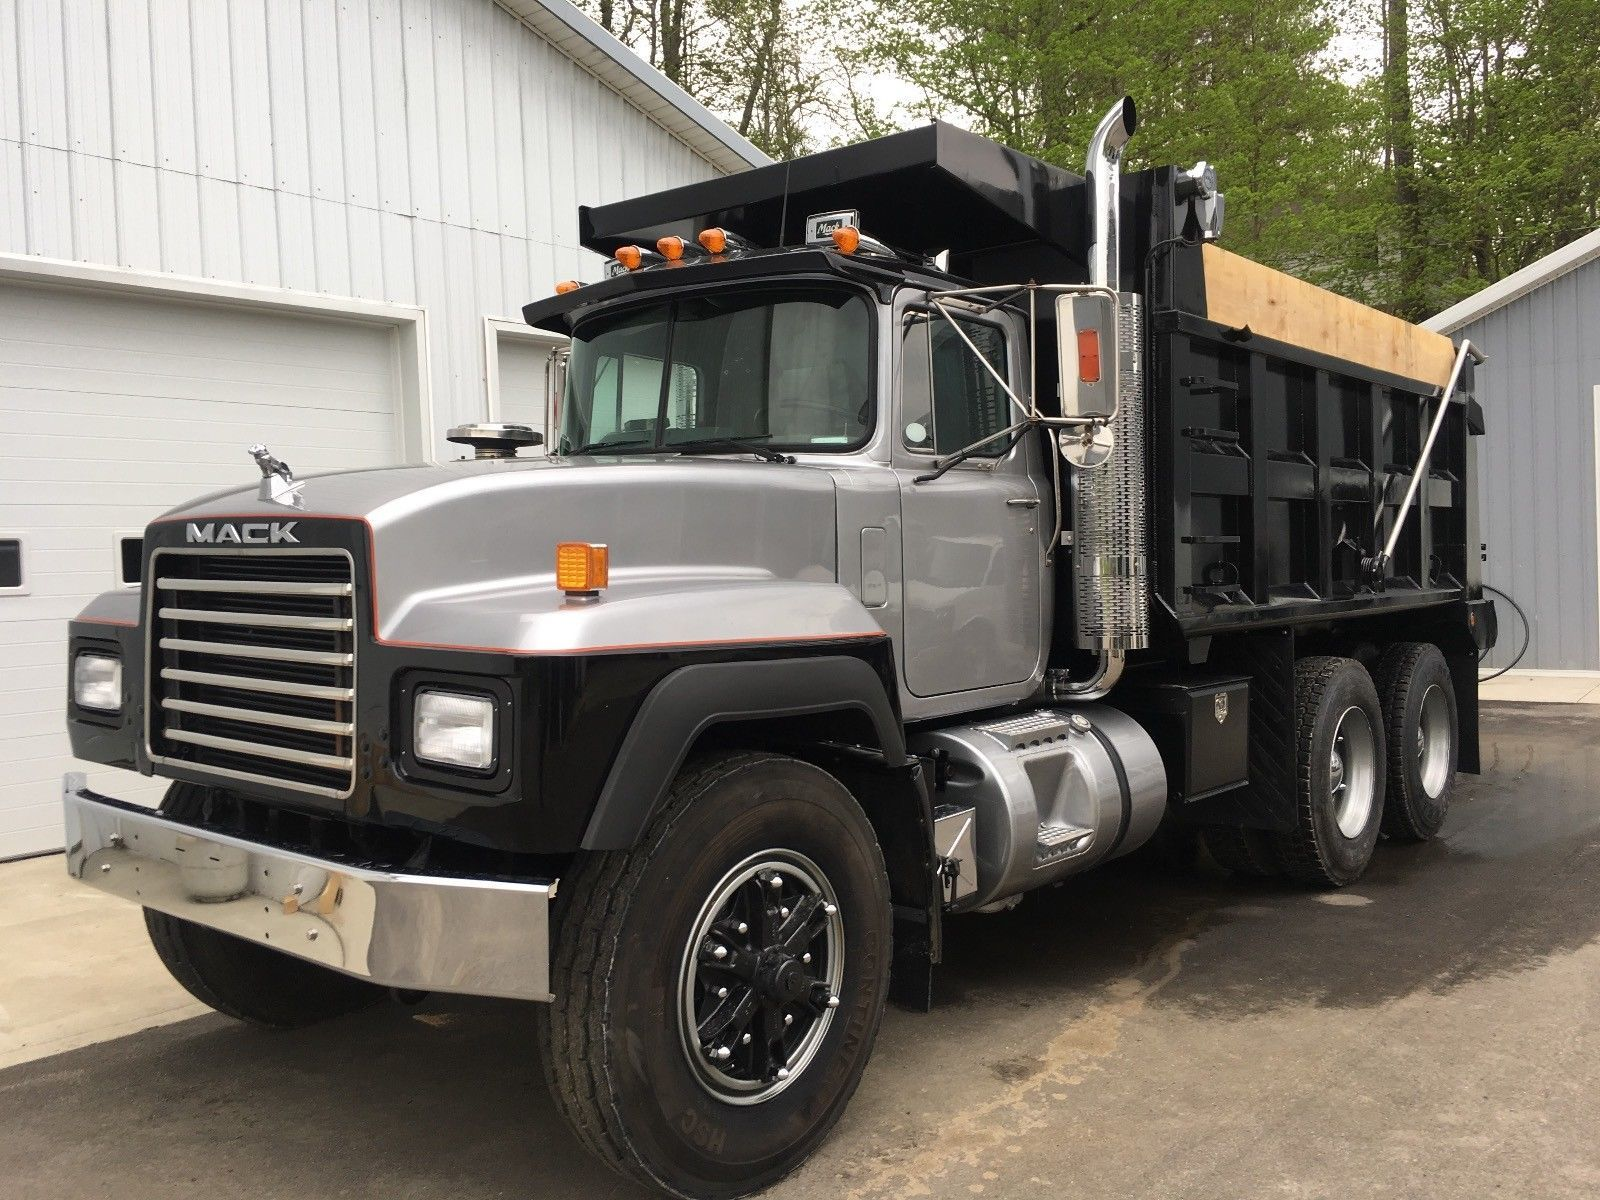 completely restored 1994 Mack RD Dump Truck | Trucks for